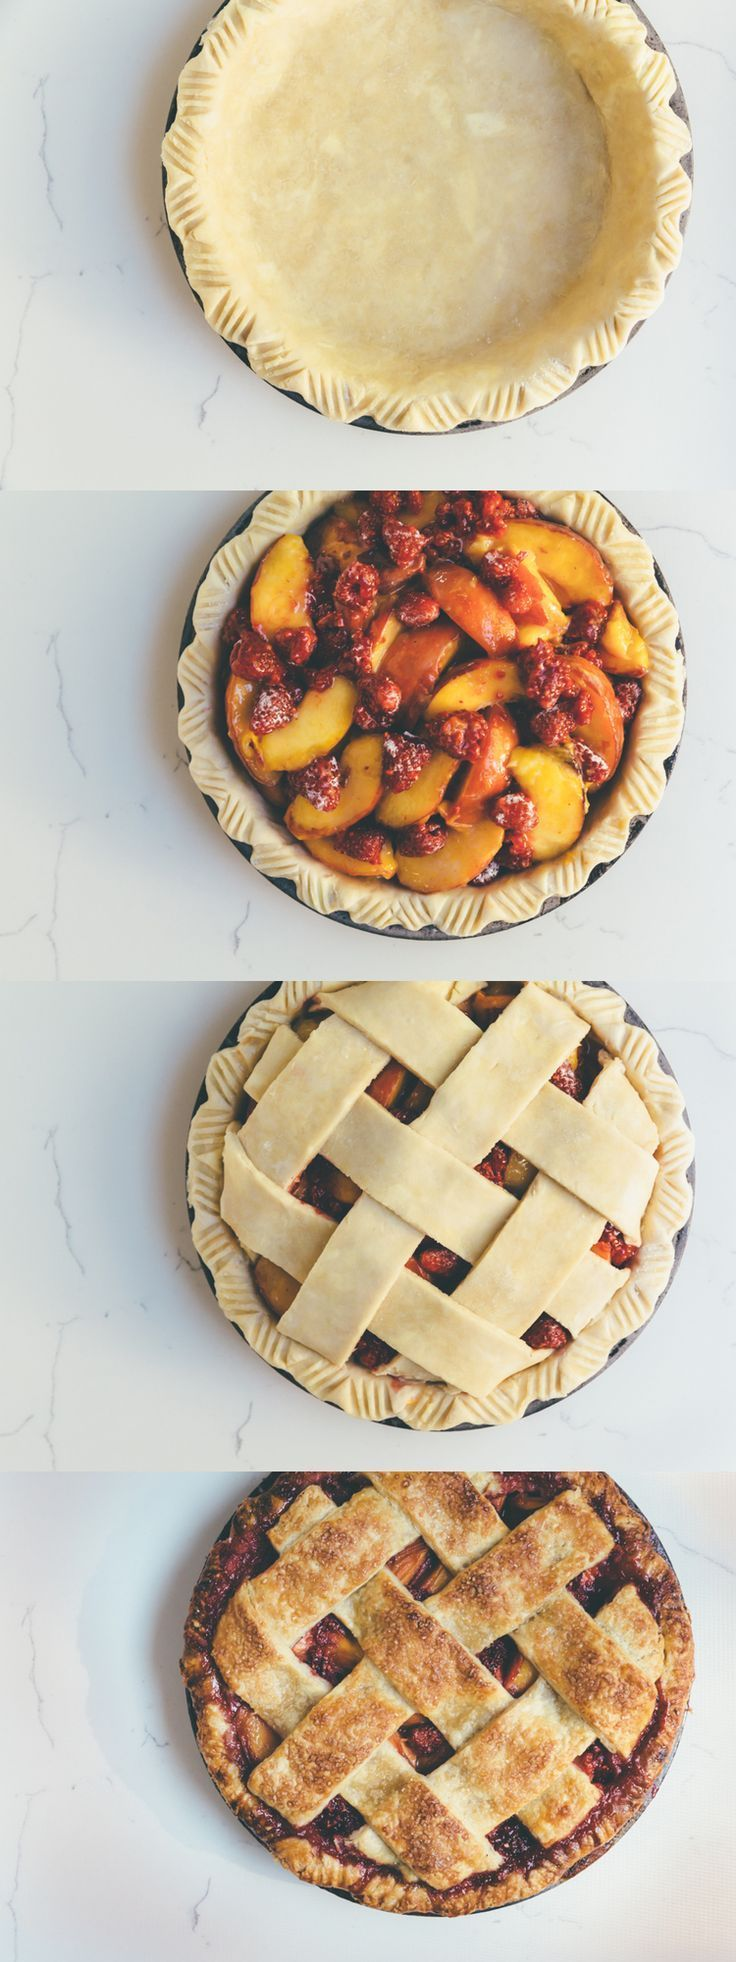 Sumertime = pie season! This is maybe my favorite pie of all time. :)